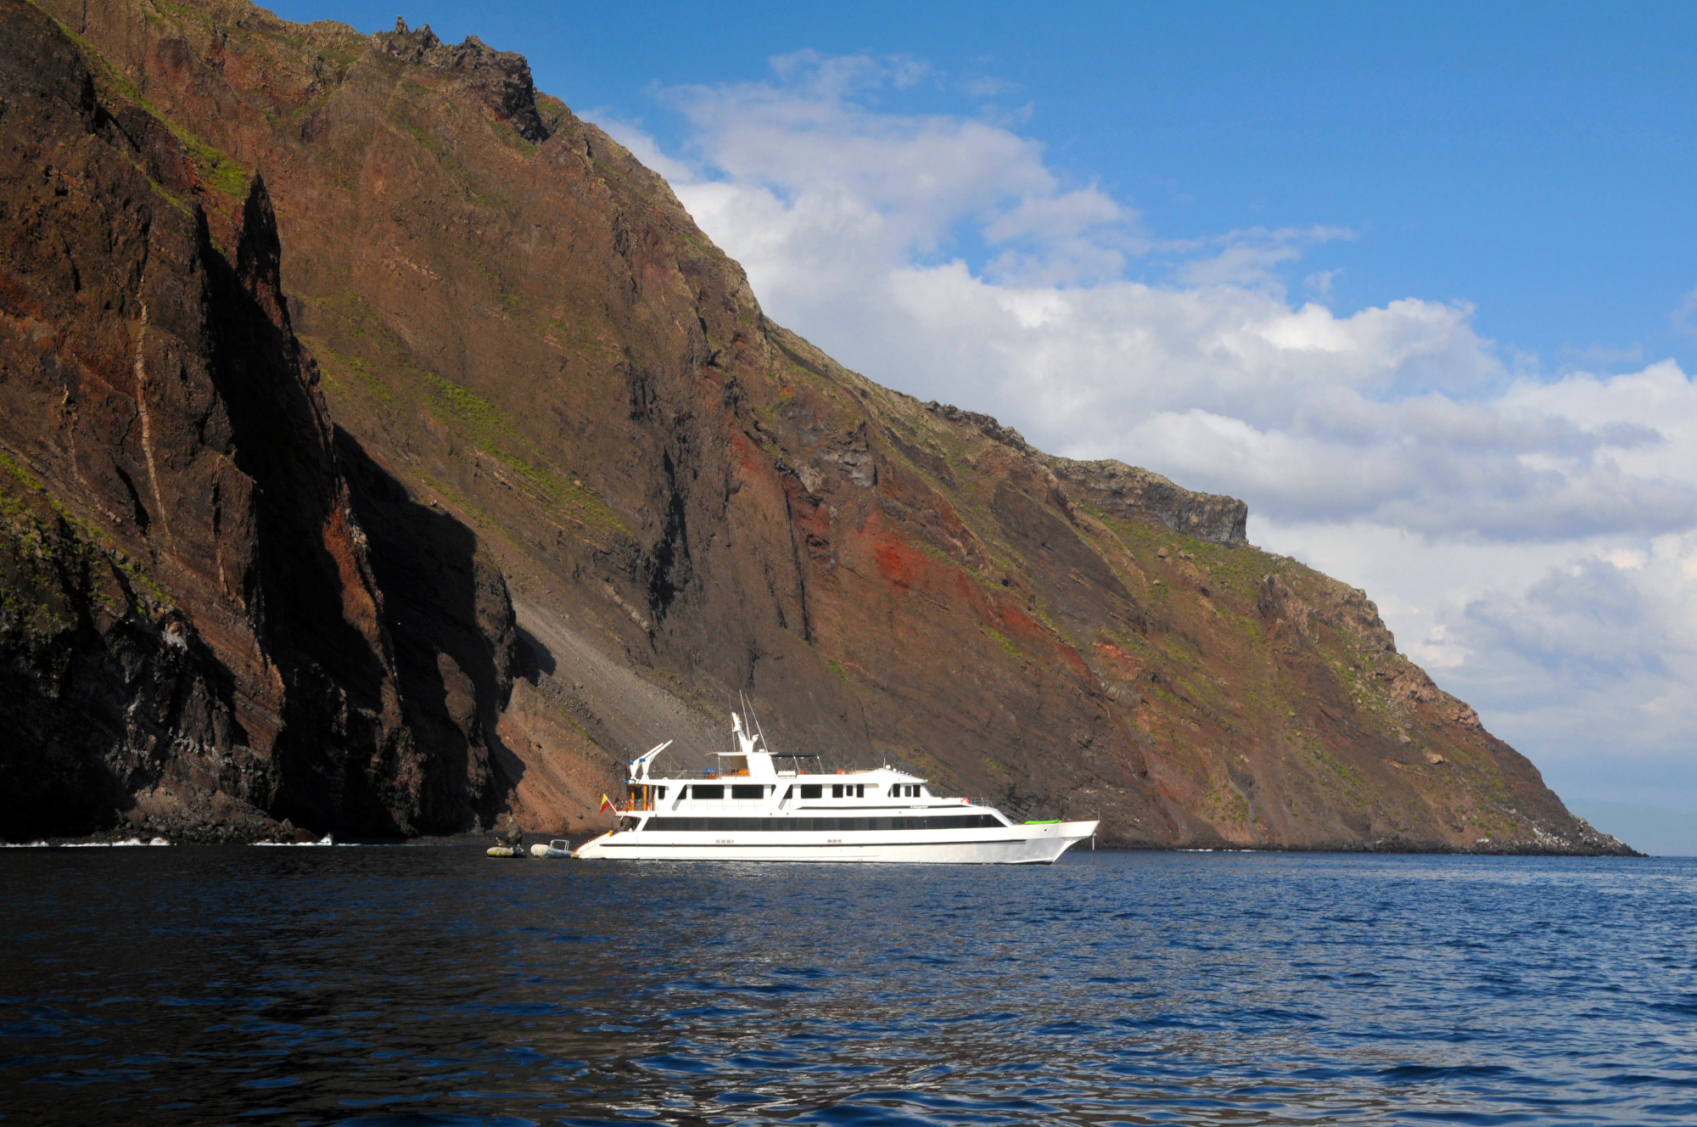 Integrity luxury yacht charter in Galapagos off rocky coast